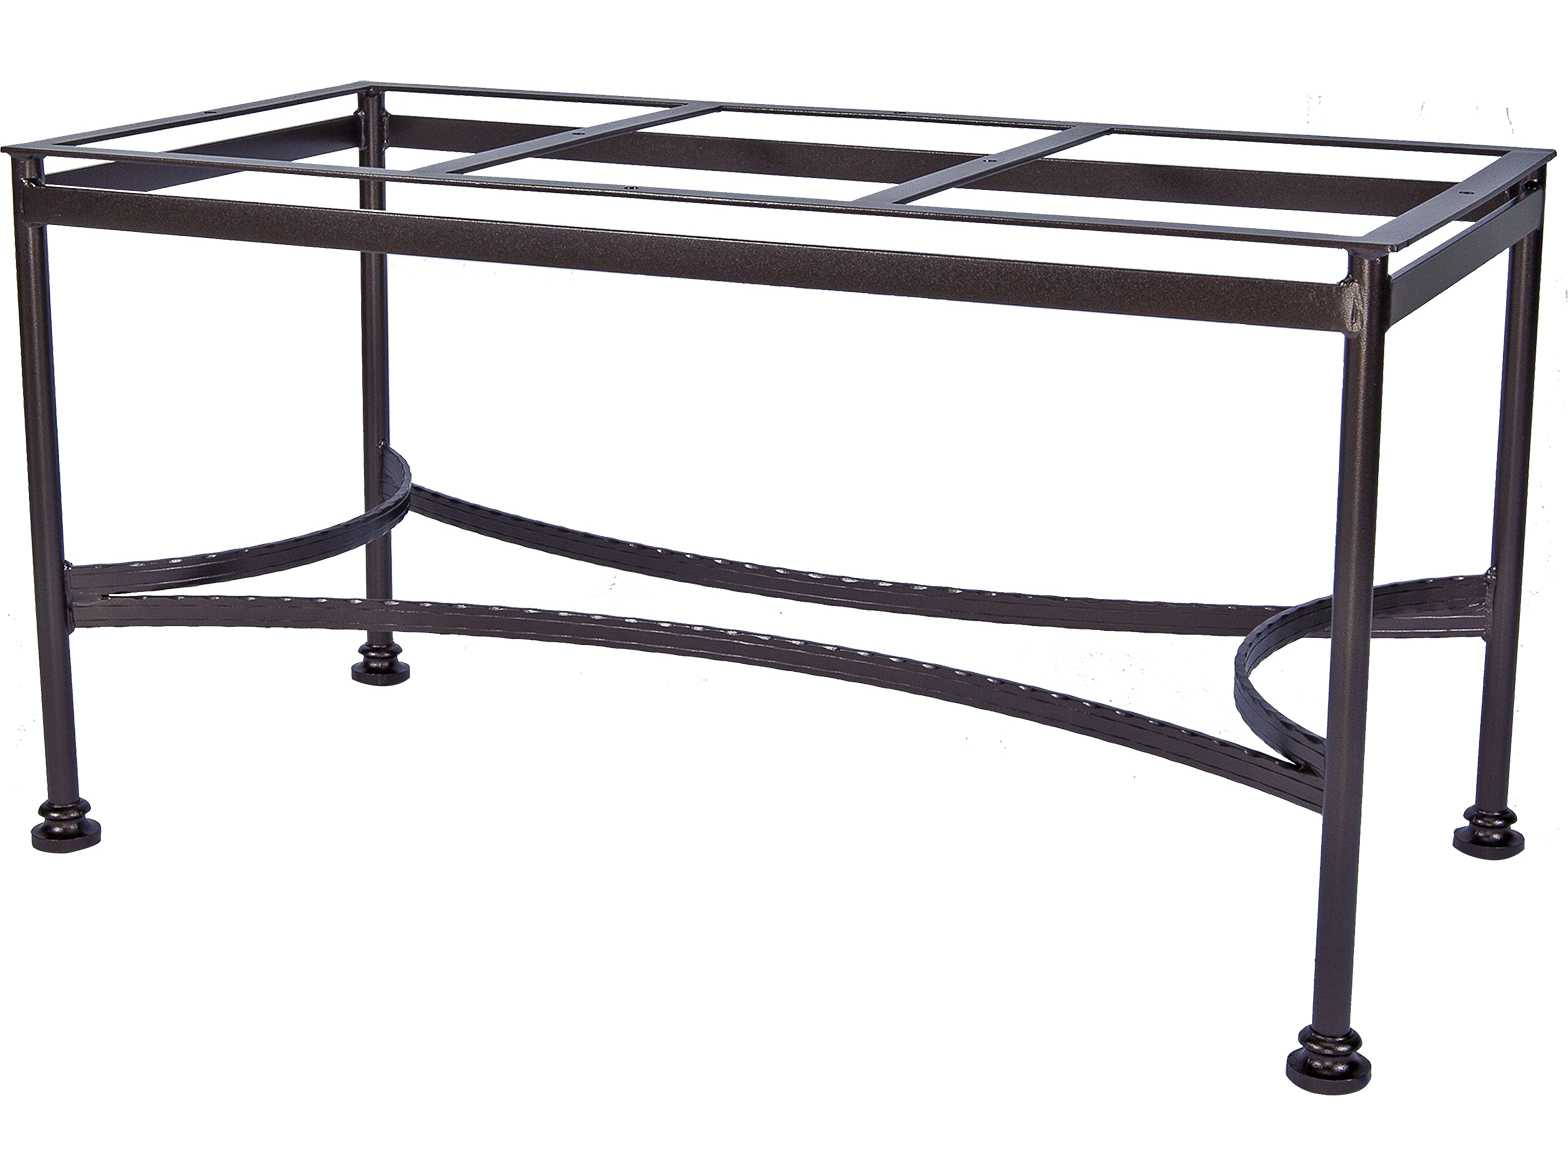 ow lee classico wrought iron dining table base 9 dt07. Black Bedroom Furniture Sets. Home Design Ideas